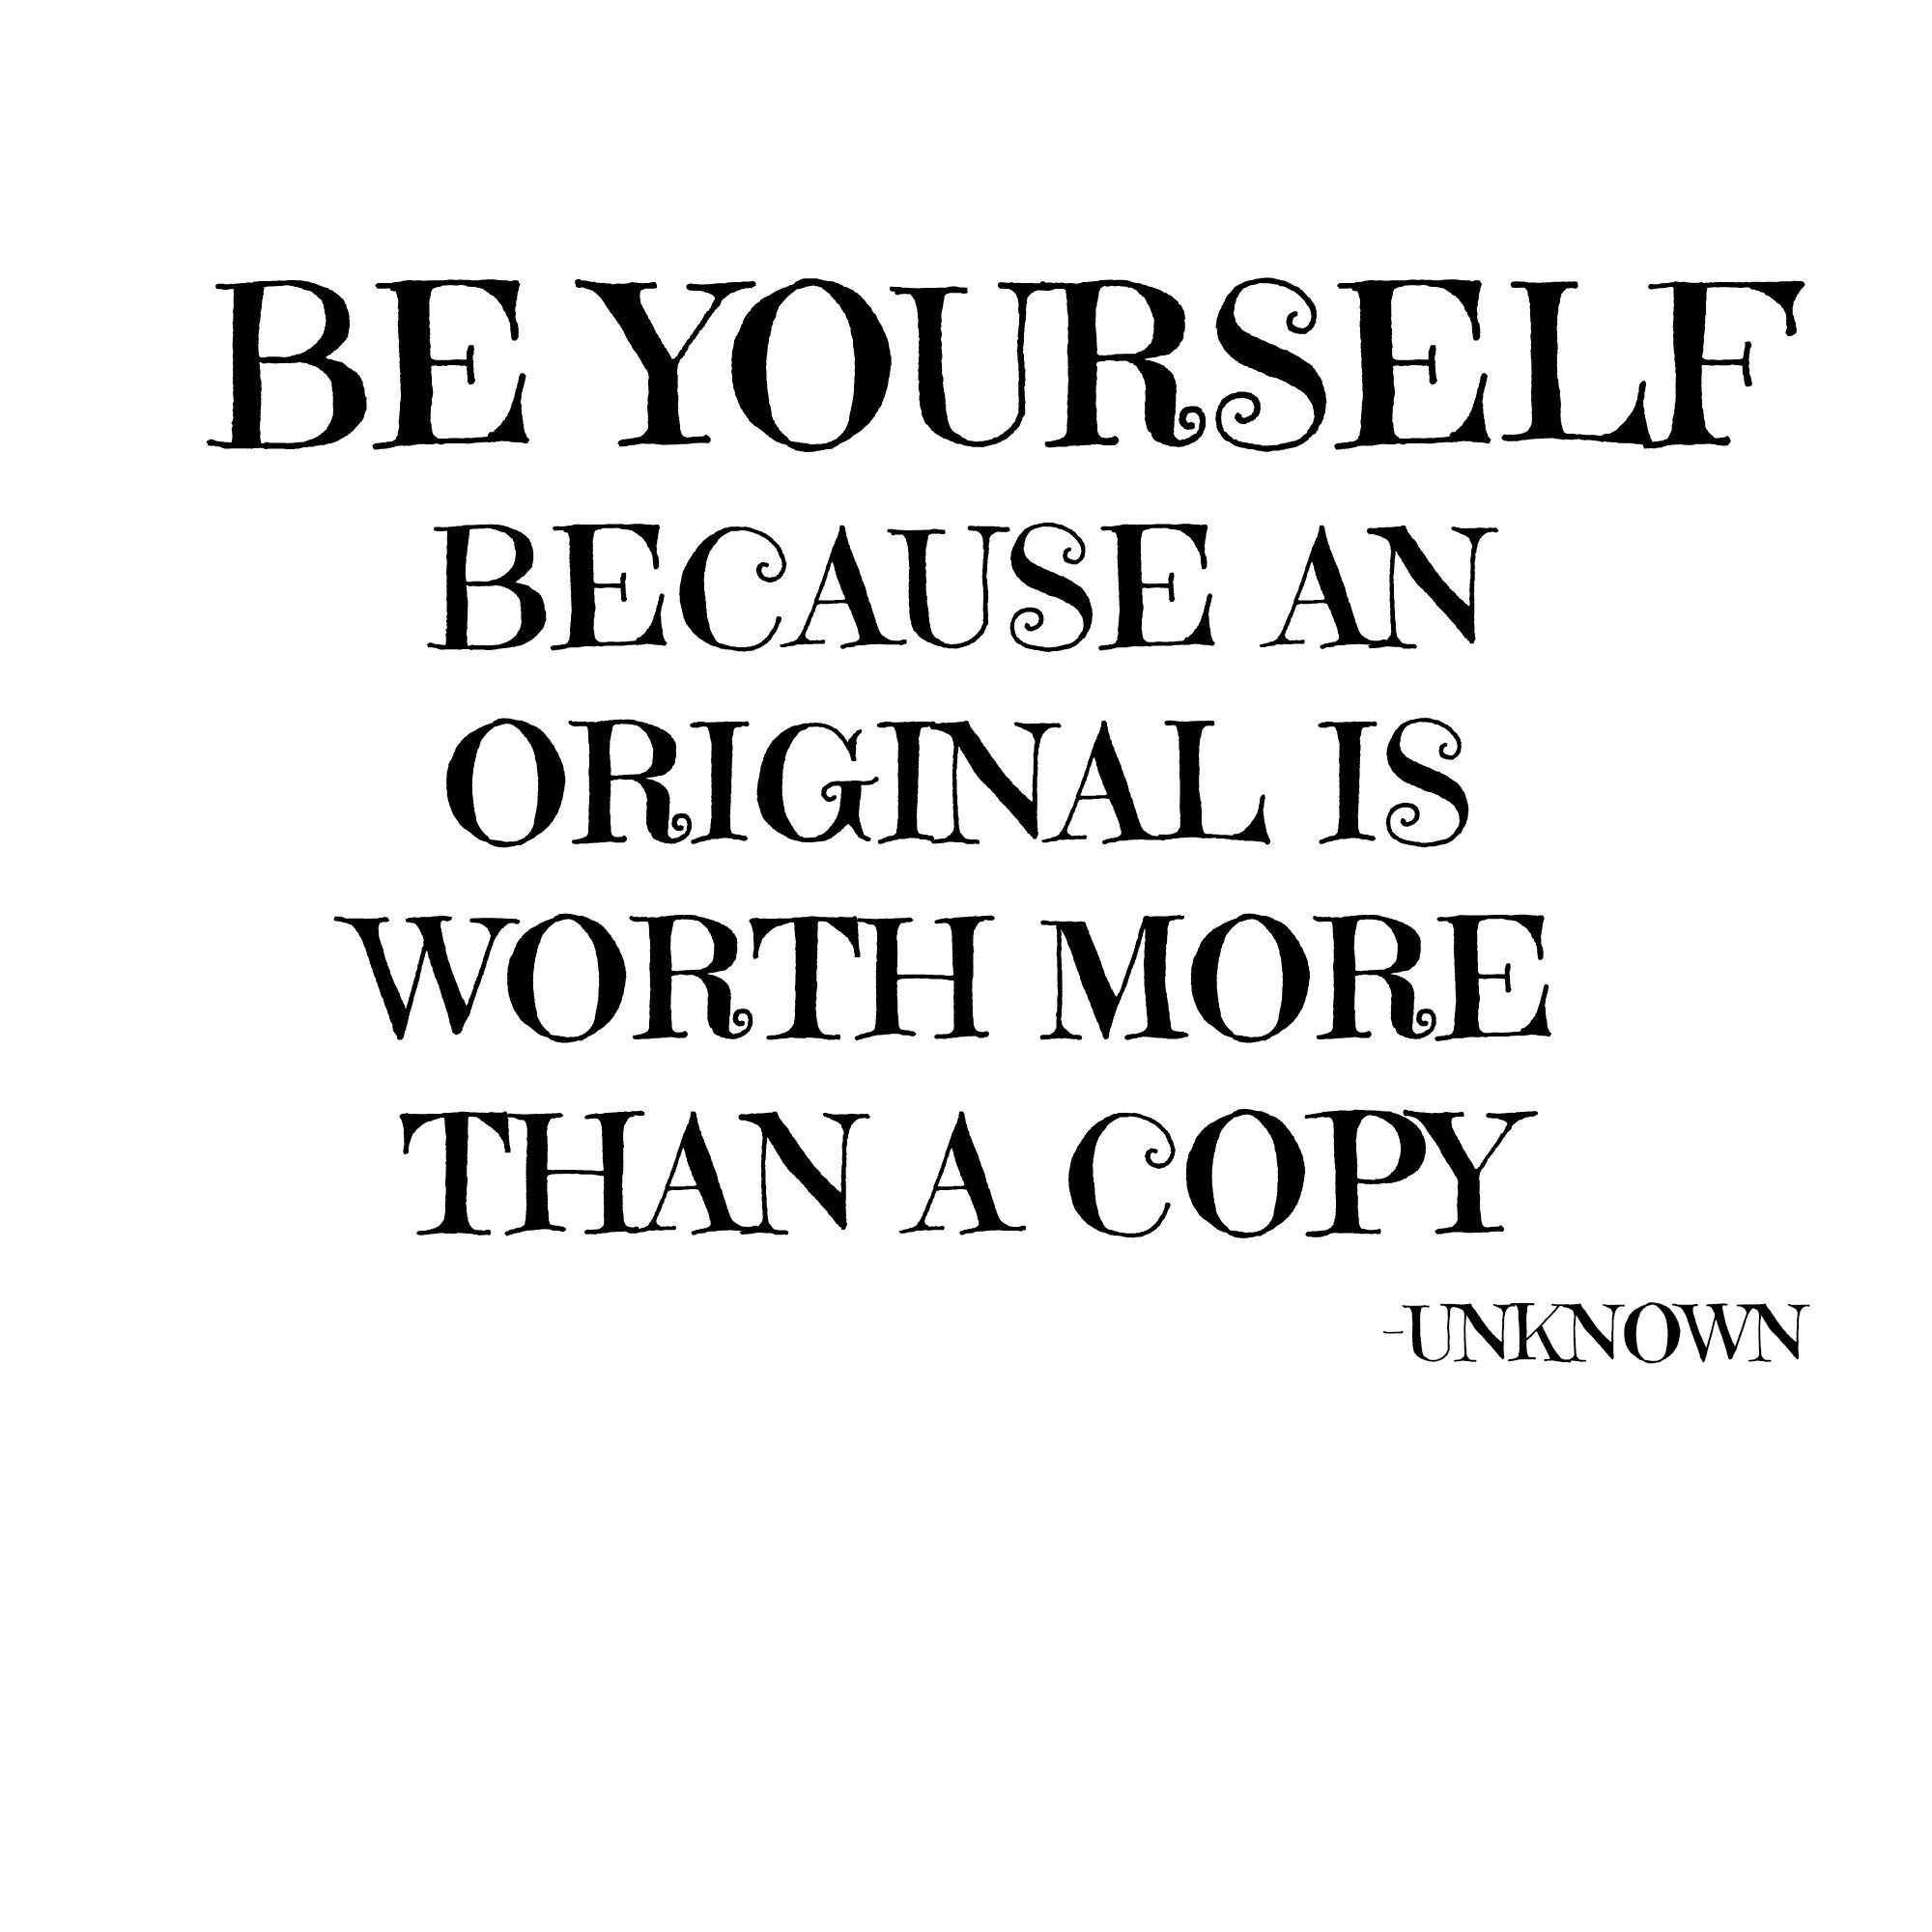 Be Yourself Quote Jpg 2 000 2 000 Pixels Funny Minion Quotes Be Yourself Quotes Minions Quotes